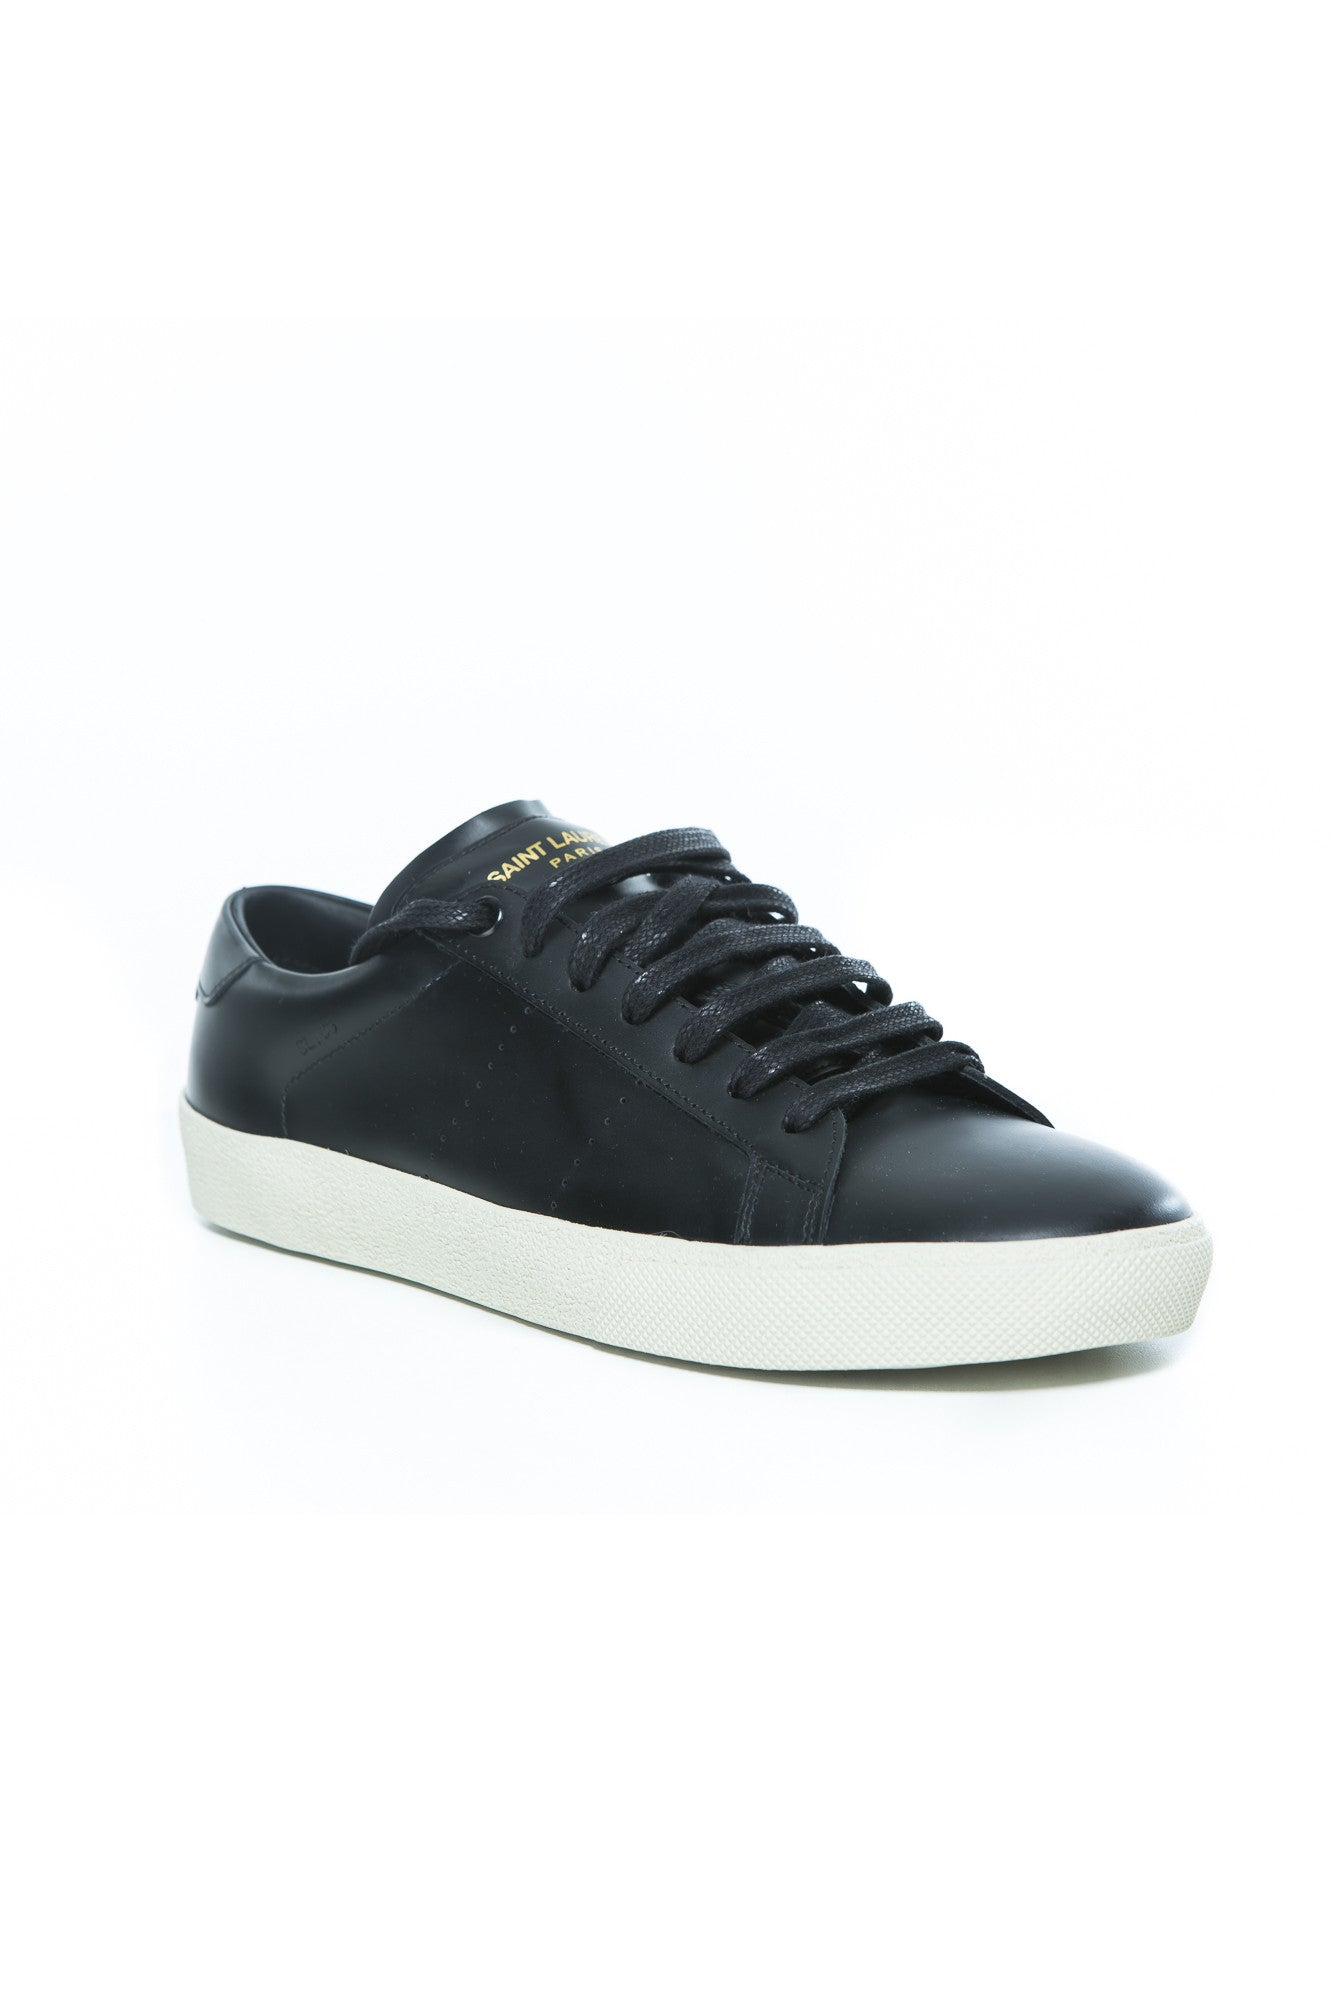 75dd563463a SAINT LAURENT SL/06 COURT CLASSIC SNEAKER IN BLACK LEATHER – THE STYLE SET